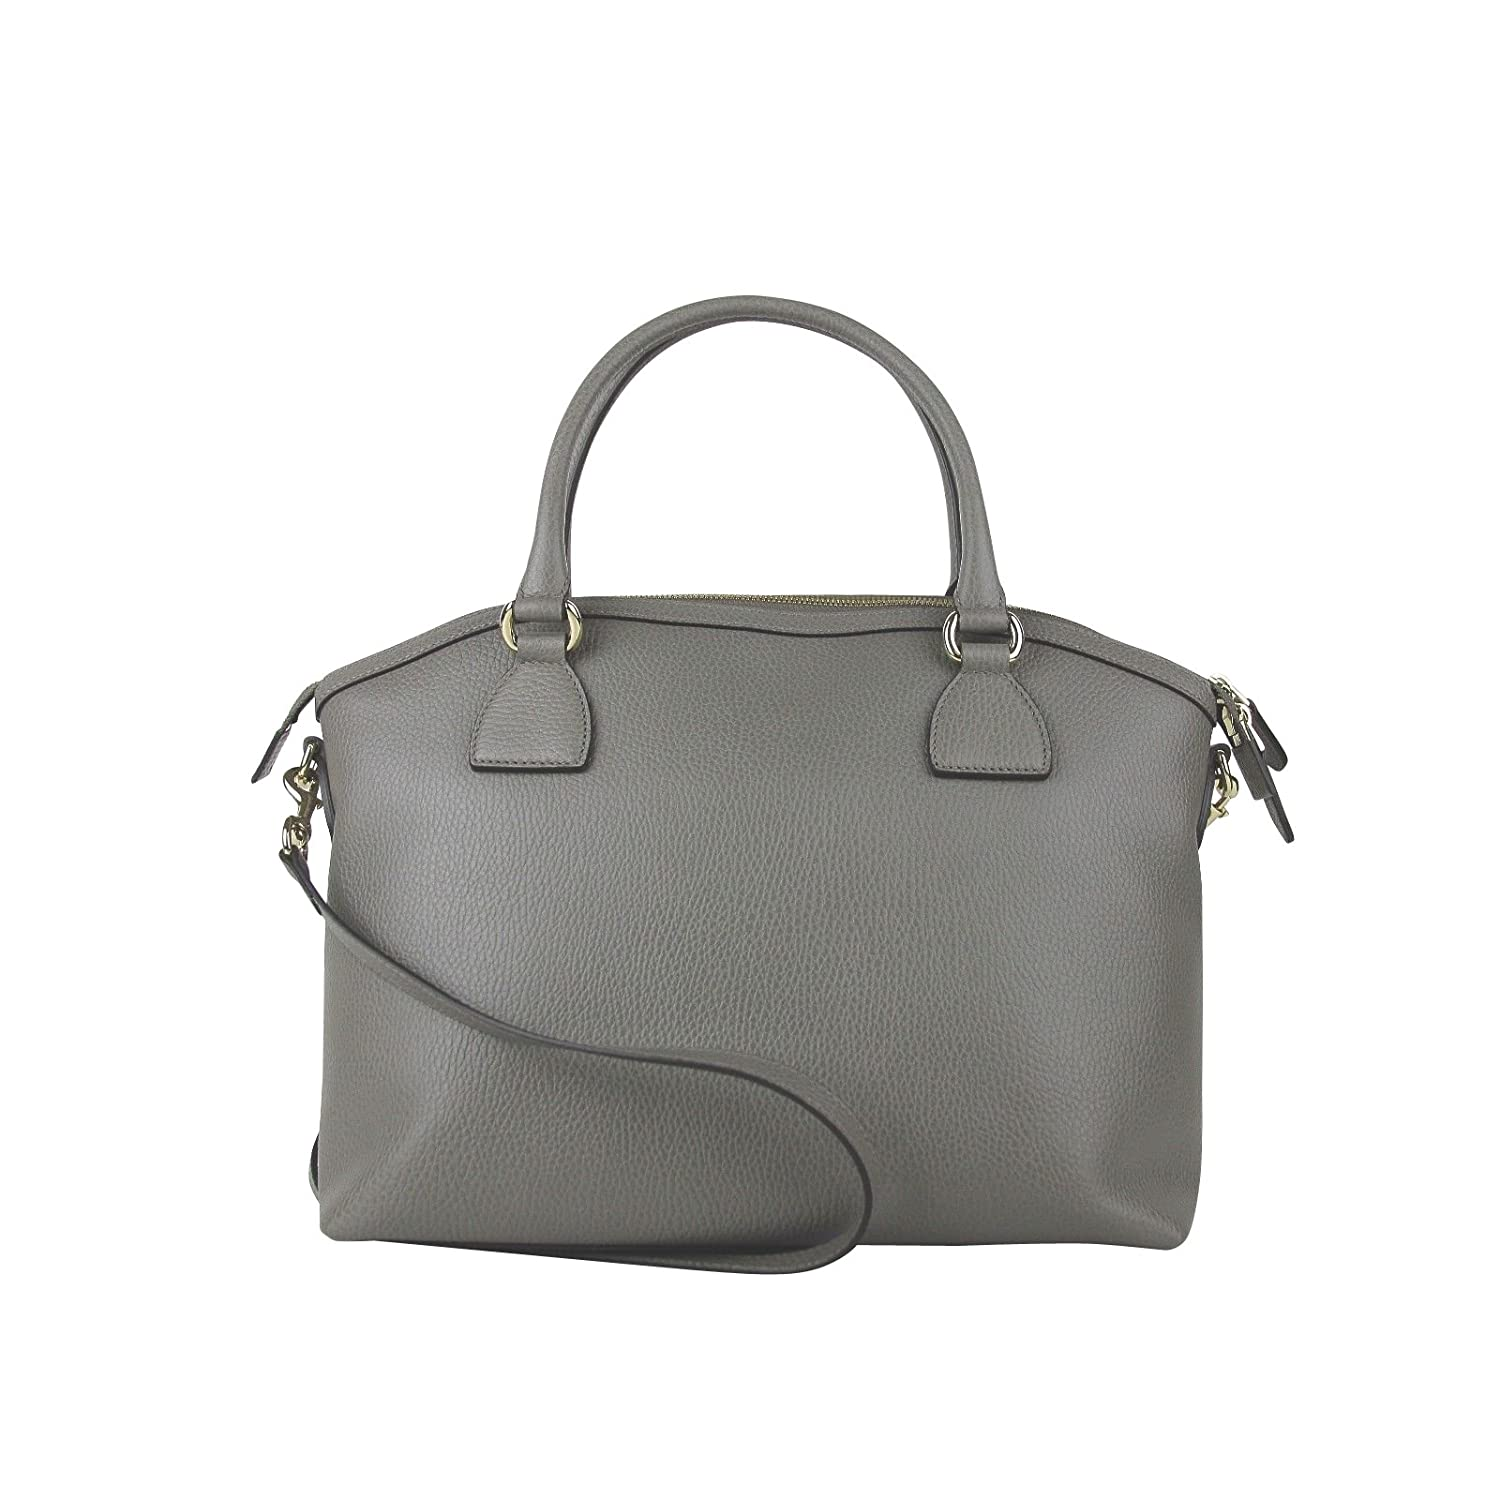 5ebf49aa1 Amazon.com: Gucci GG Charm Grey Leather Large Convertible Dome Bag With  Detachabel Strap 449660 1226: Shoes